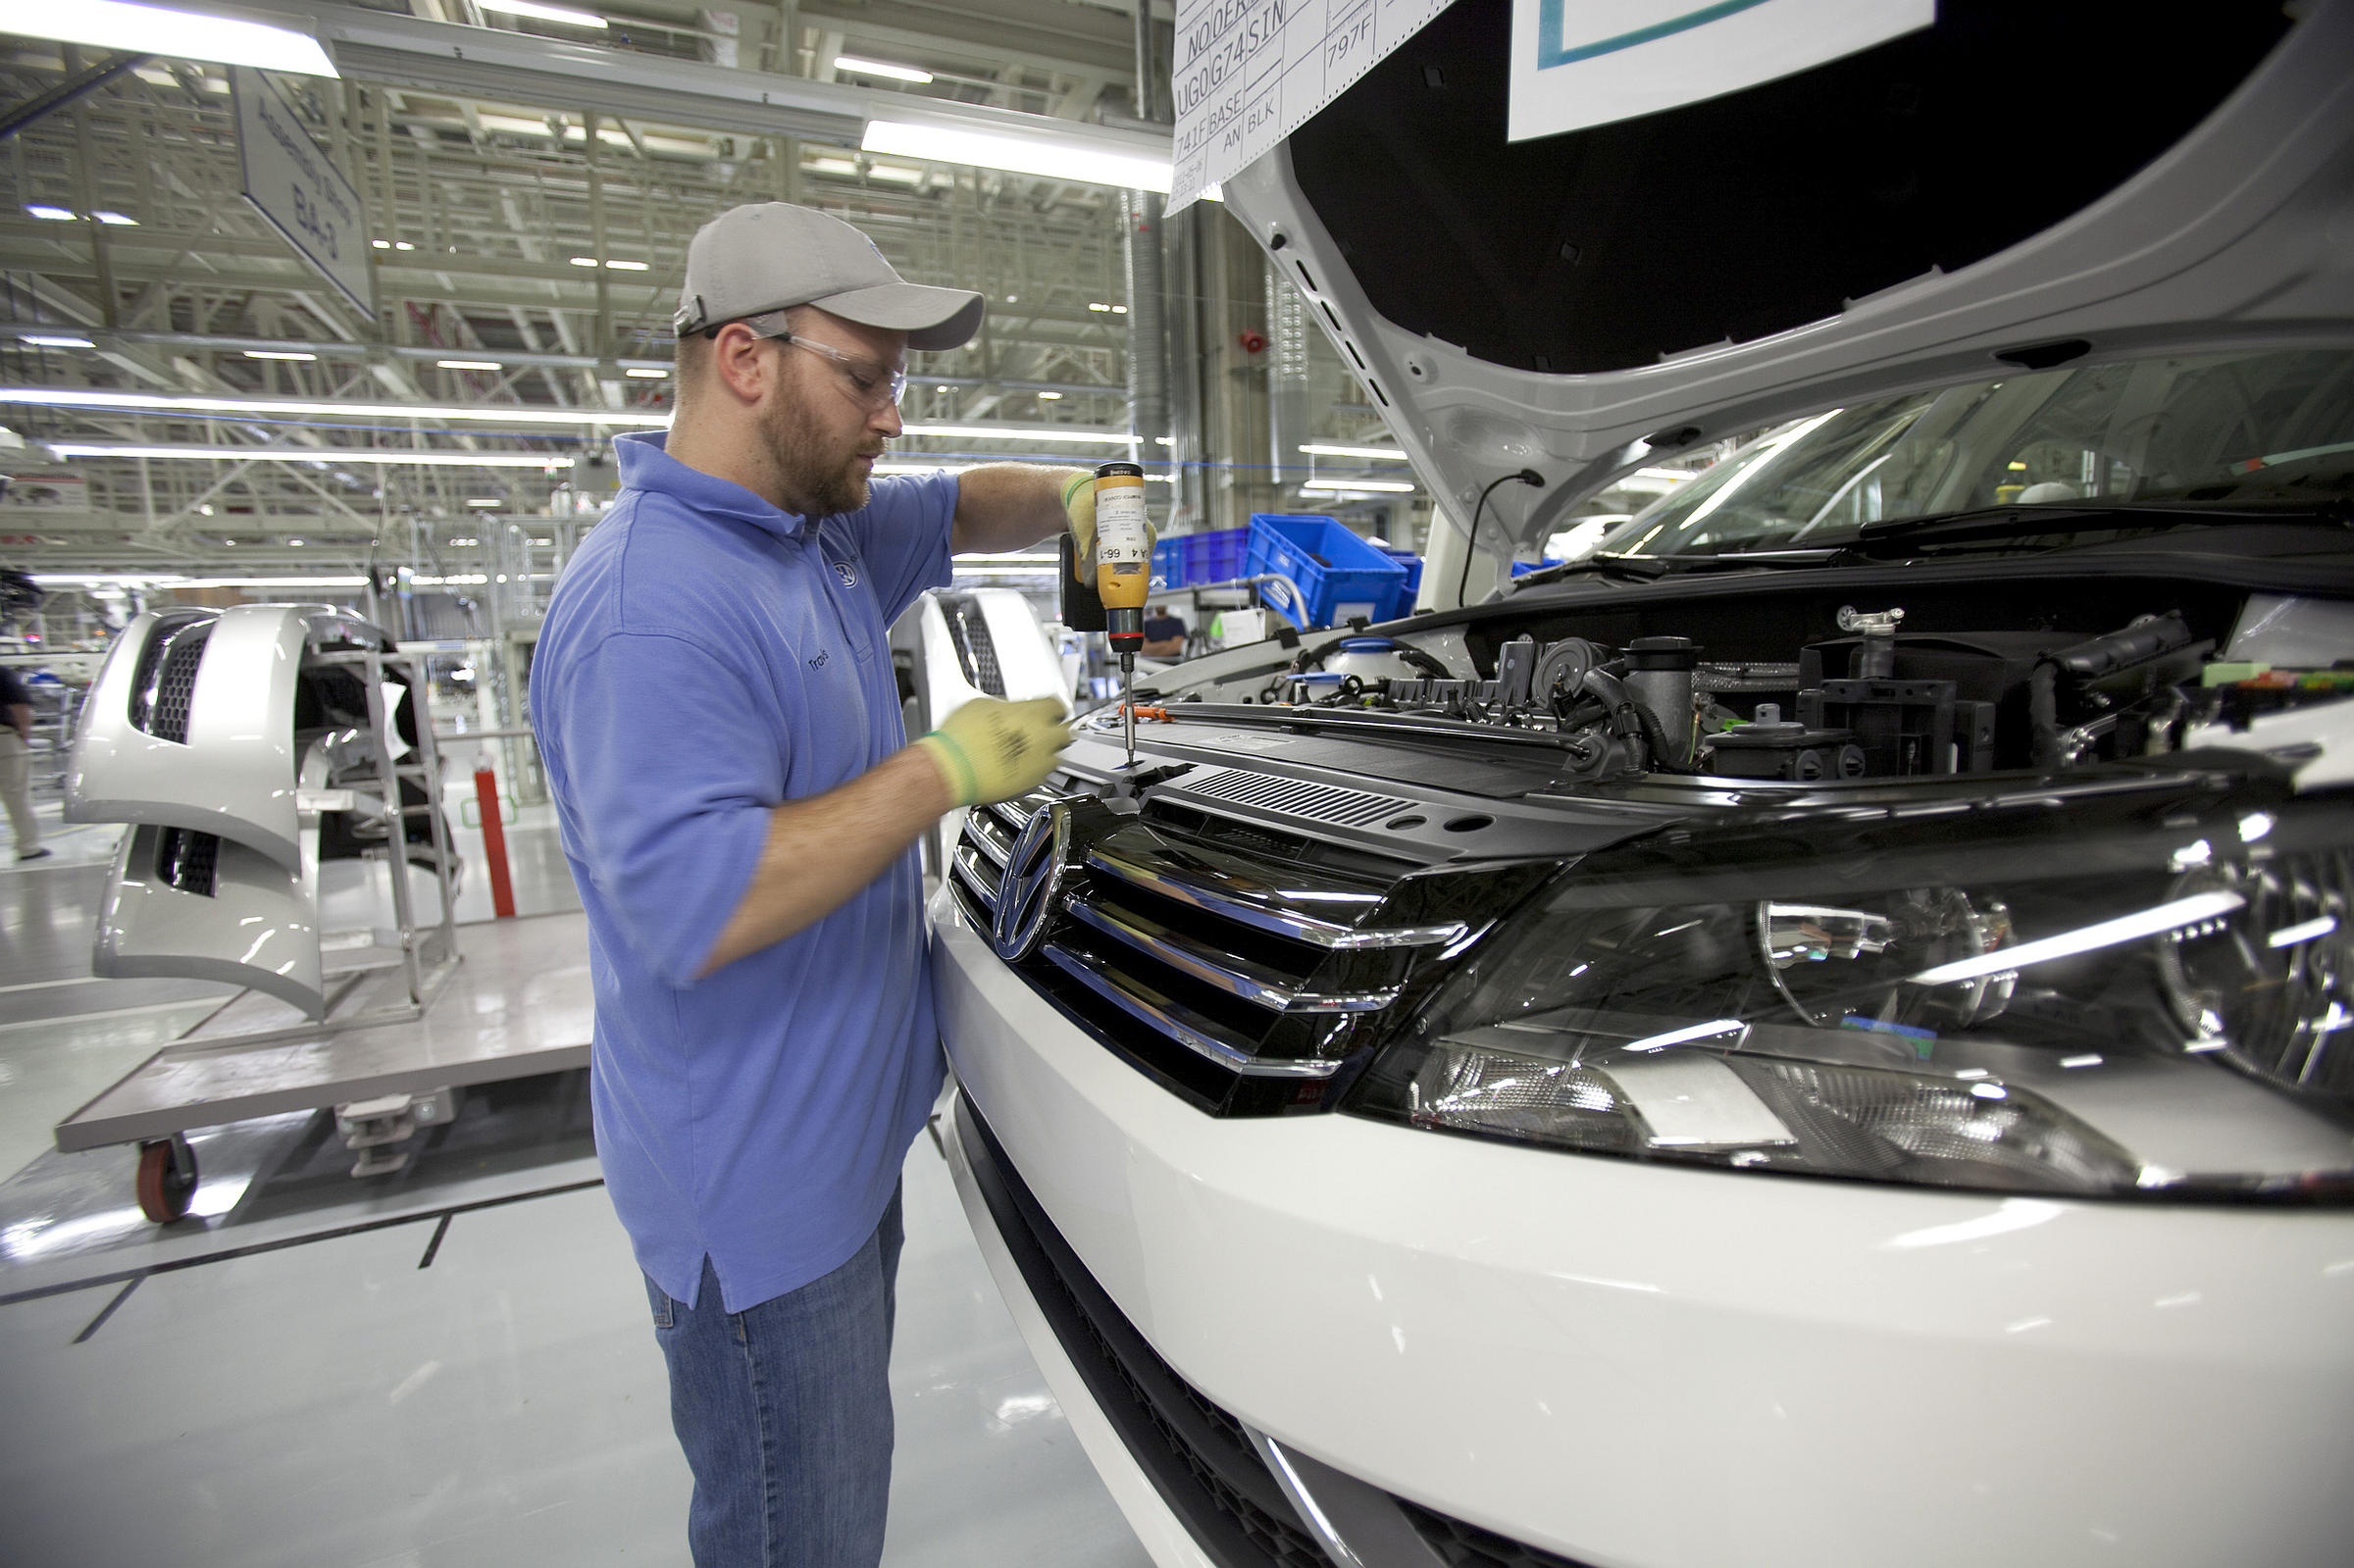 Labor board orders Volkswagen to begin bargaining with UAW